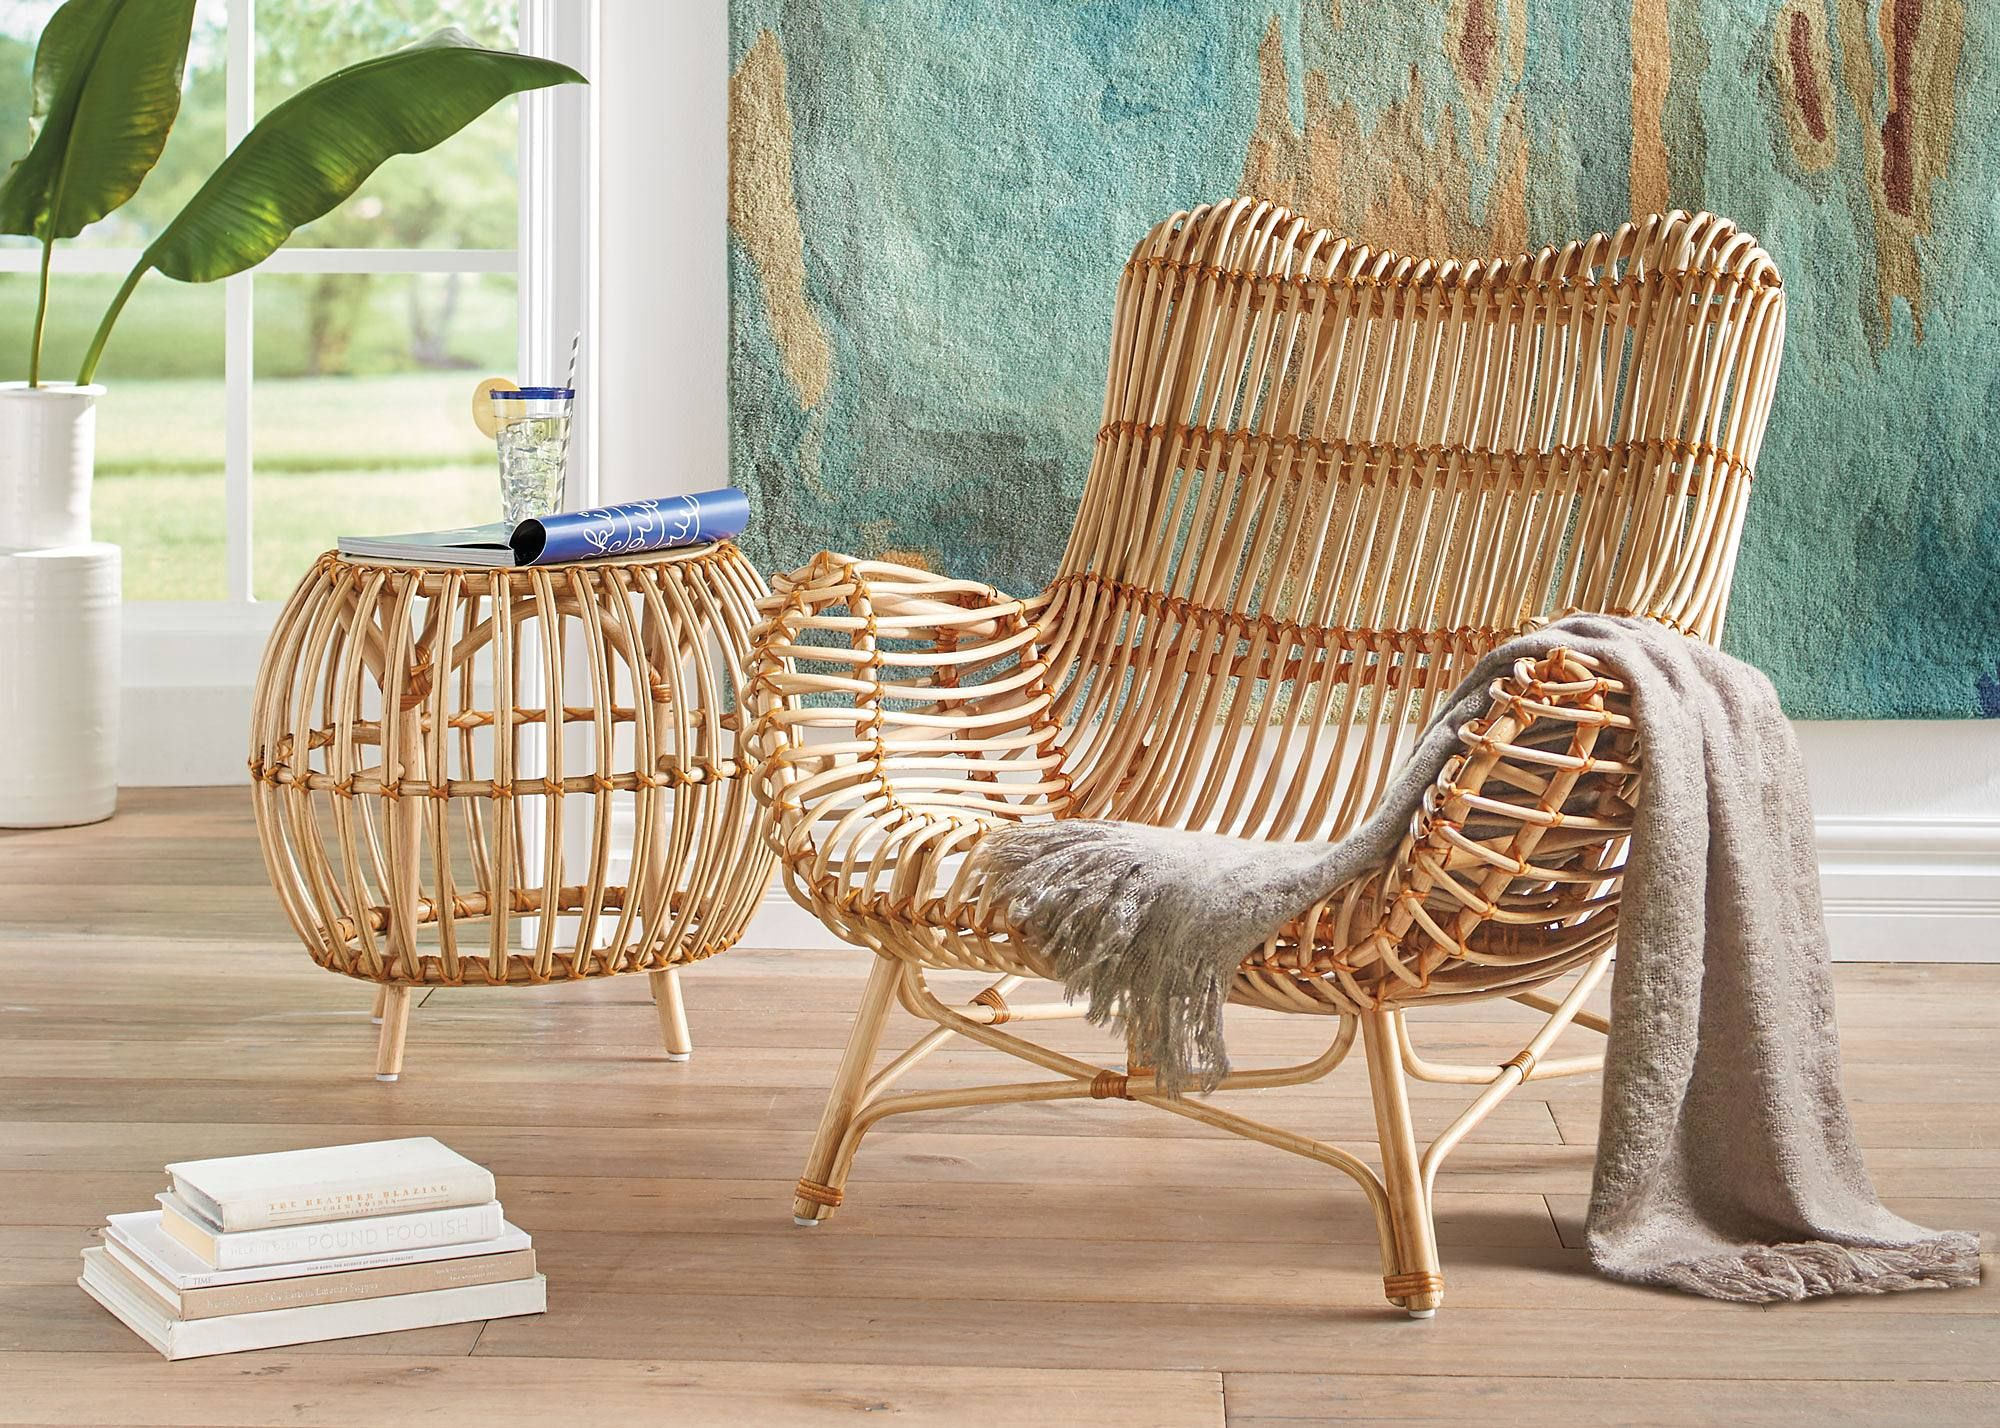 Indoor Rattan Furniture A Natural Art Form Grandin Road Blog Rattan Chair Indoor Rattan Furniture Rattan